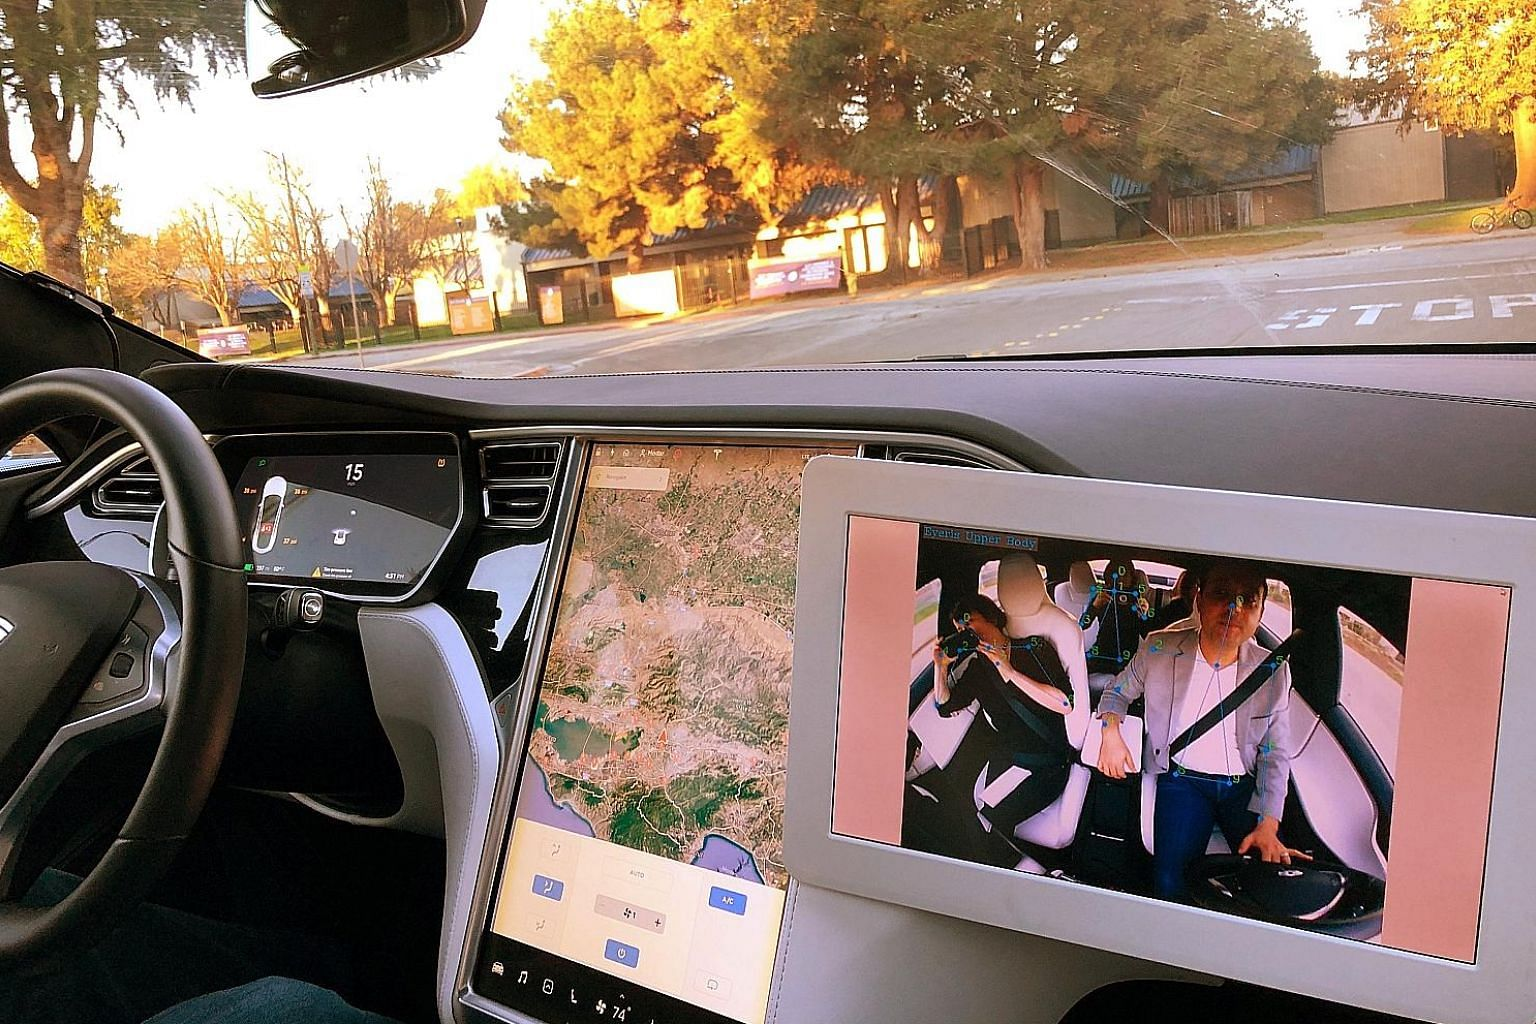 Occupants in a car are seen on a monitor using technology by Silicon Valley company Eyeris Technologies, which uses cameras and artificial intelligence to track drivers and passengers for safety benefits. Eyeris showcased the technology at this year'